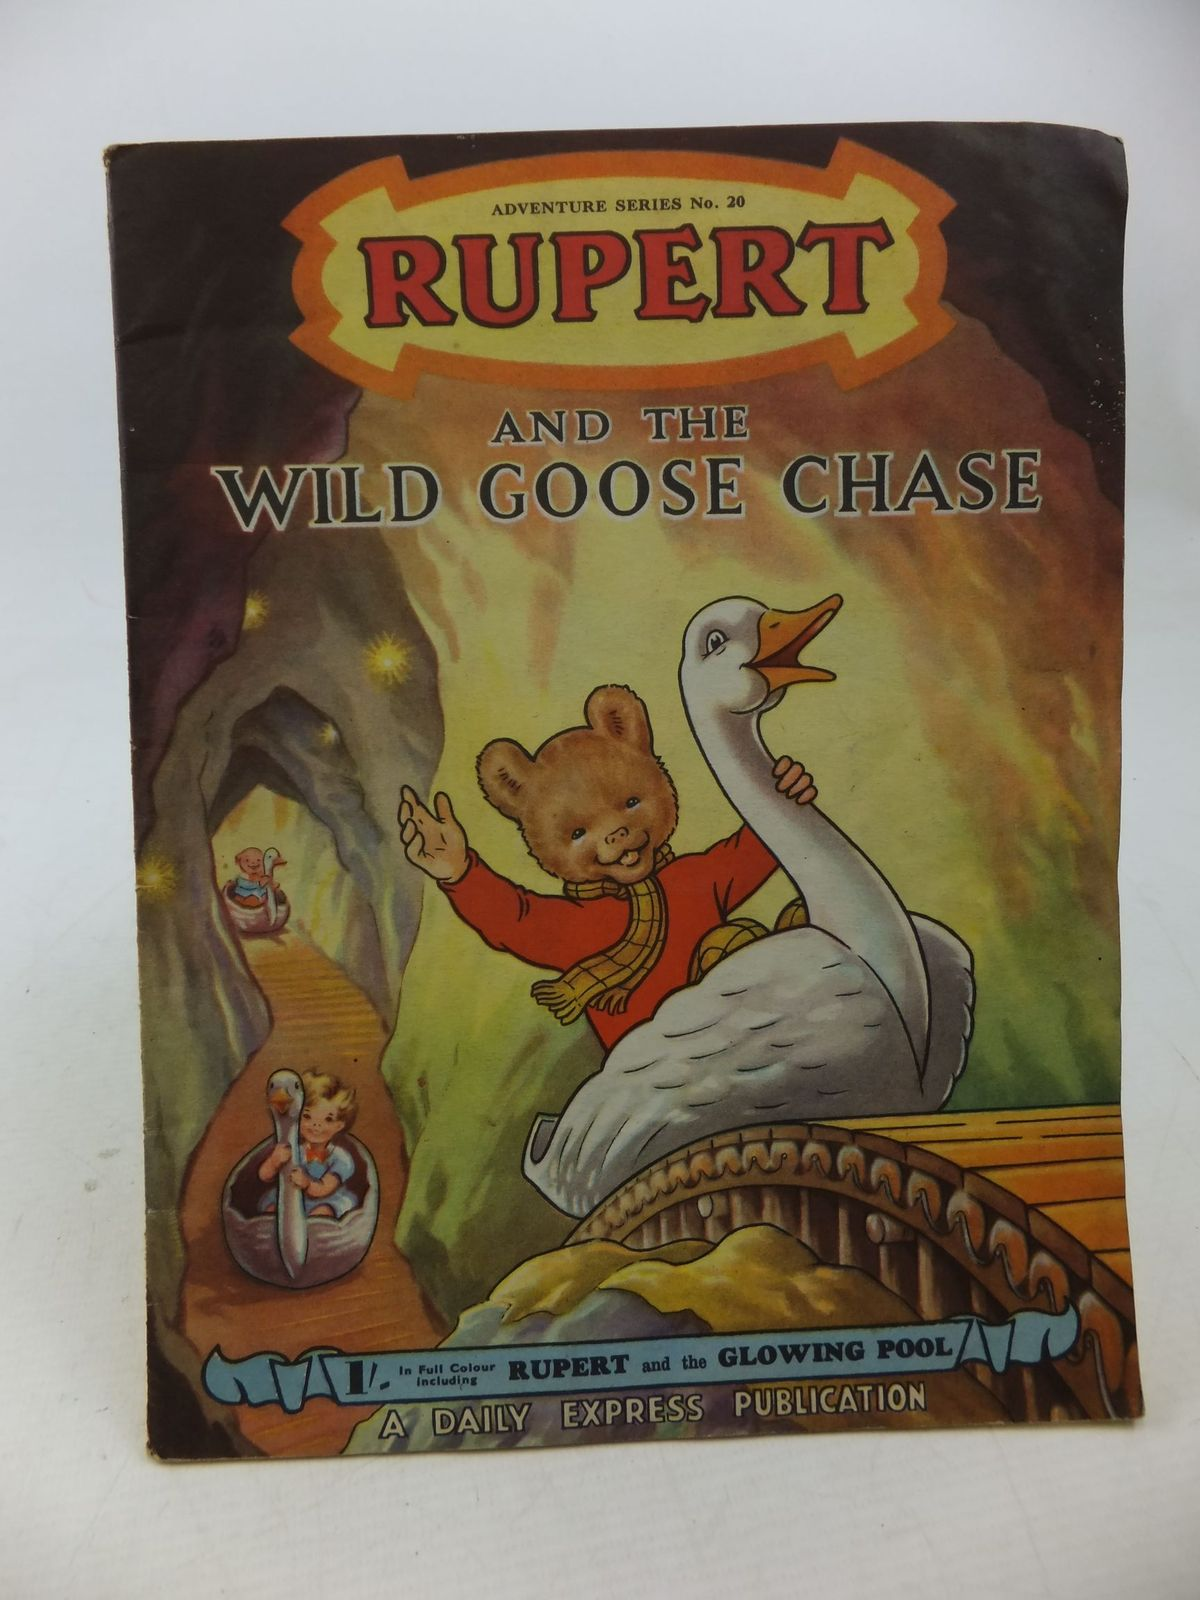 Photo of RUPERT ADVENTURE SERIES No. 20 - RUPERT AND THE WILD GOOSE CHASE written by Bestall, Alfred illustrated by Bestall, Alfred published by Daily Express (STOCK CODE: 2114201)  for sale by Stella & Rose's Books